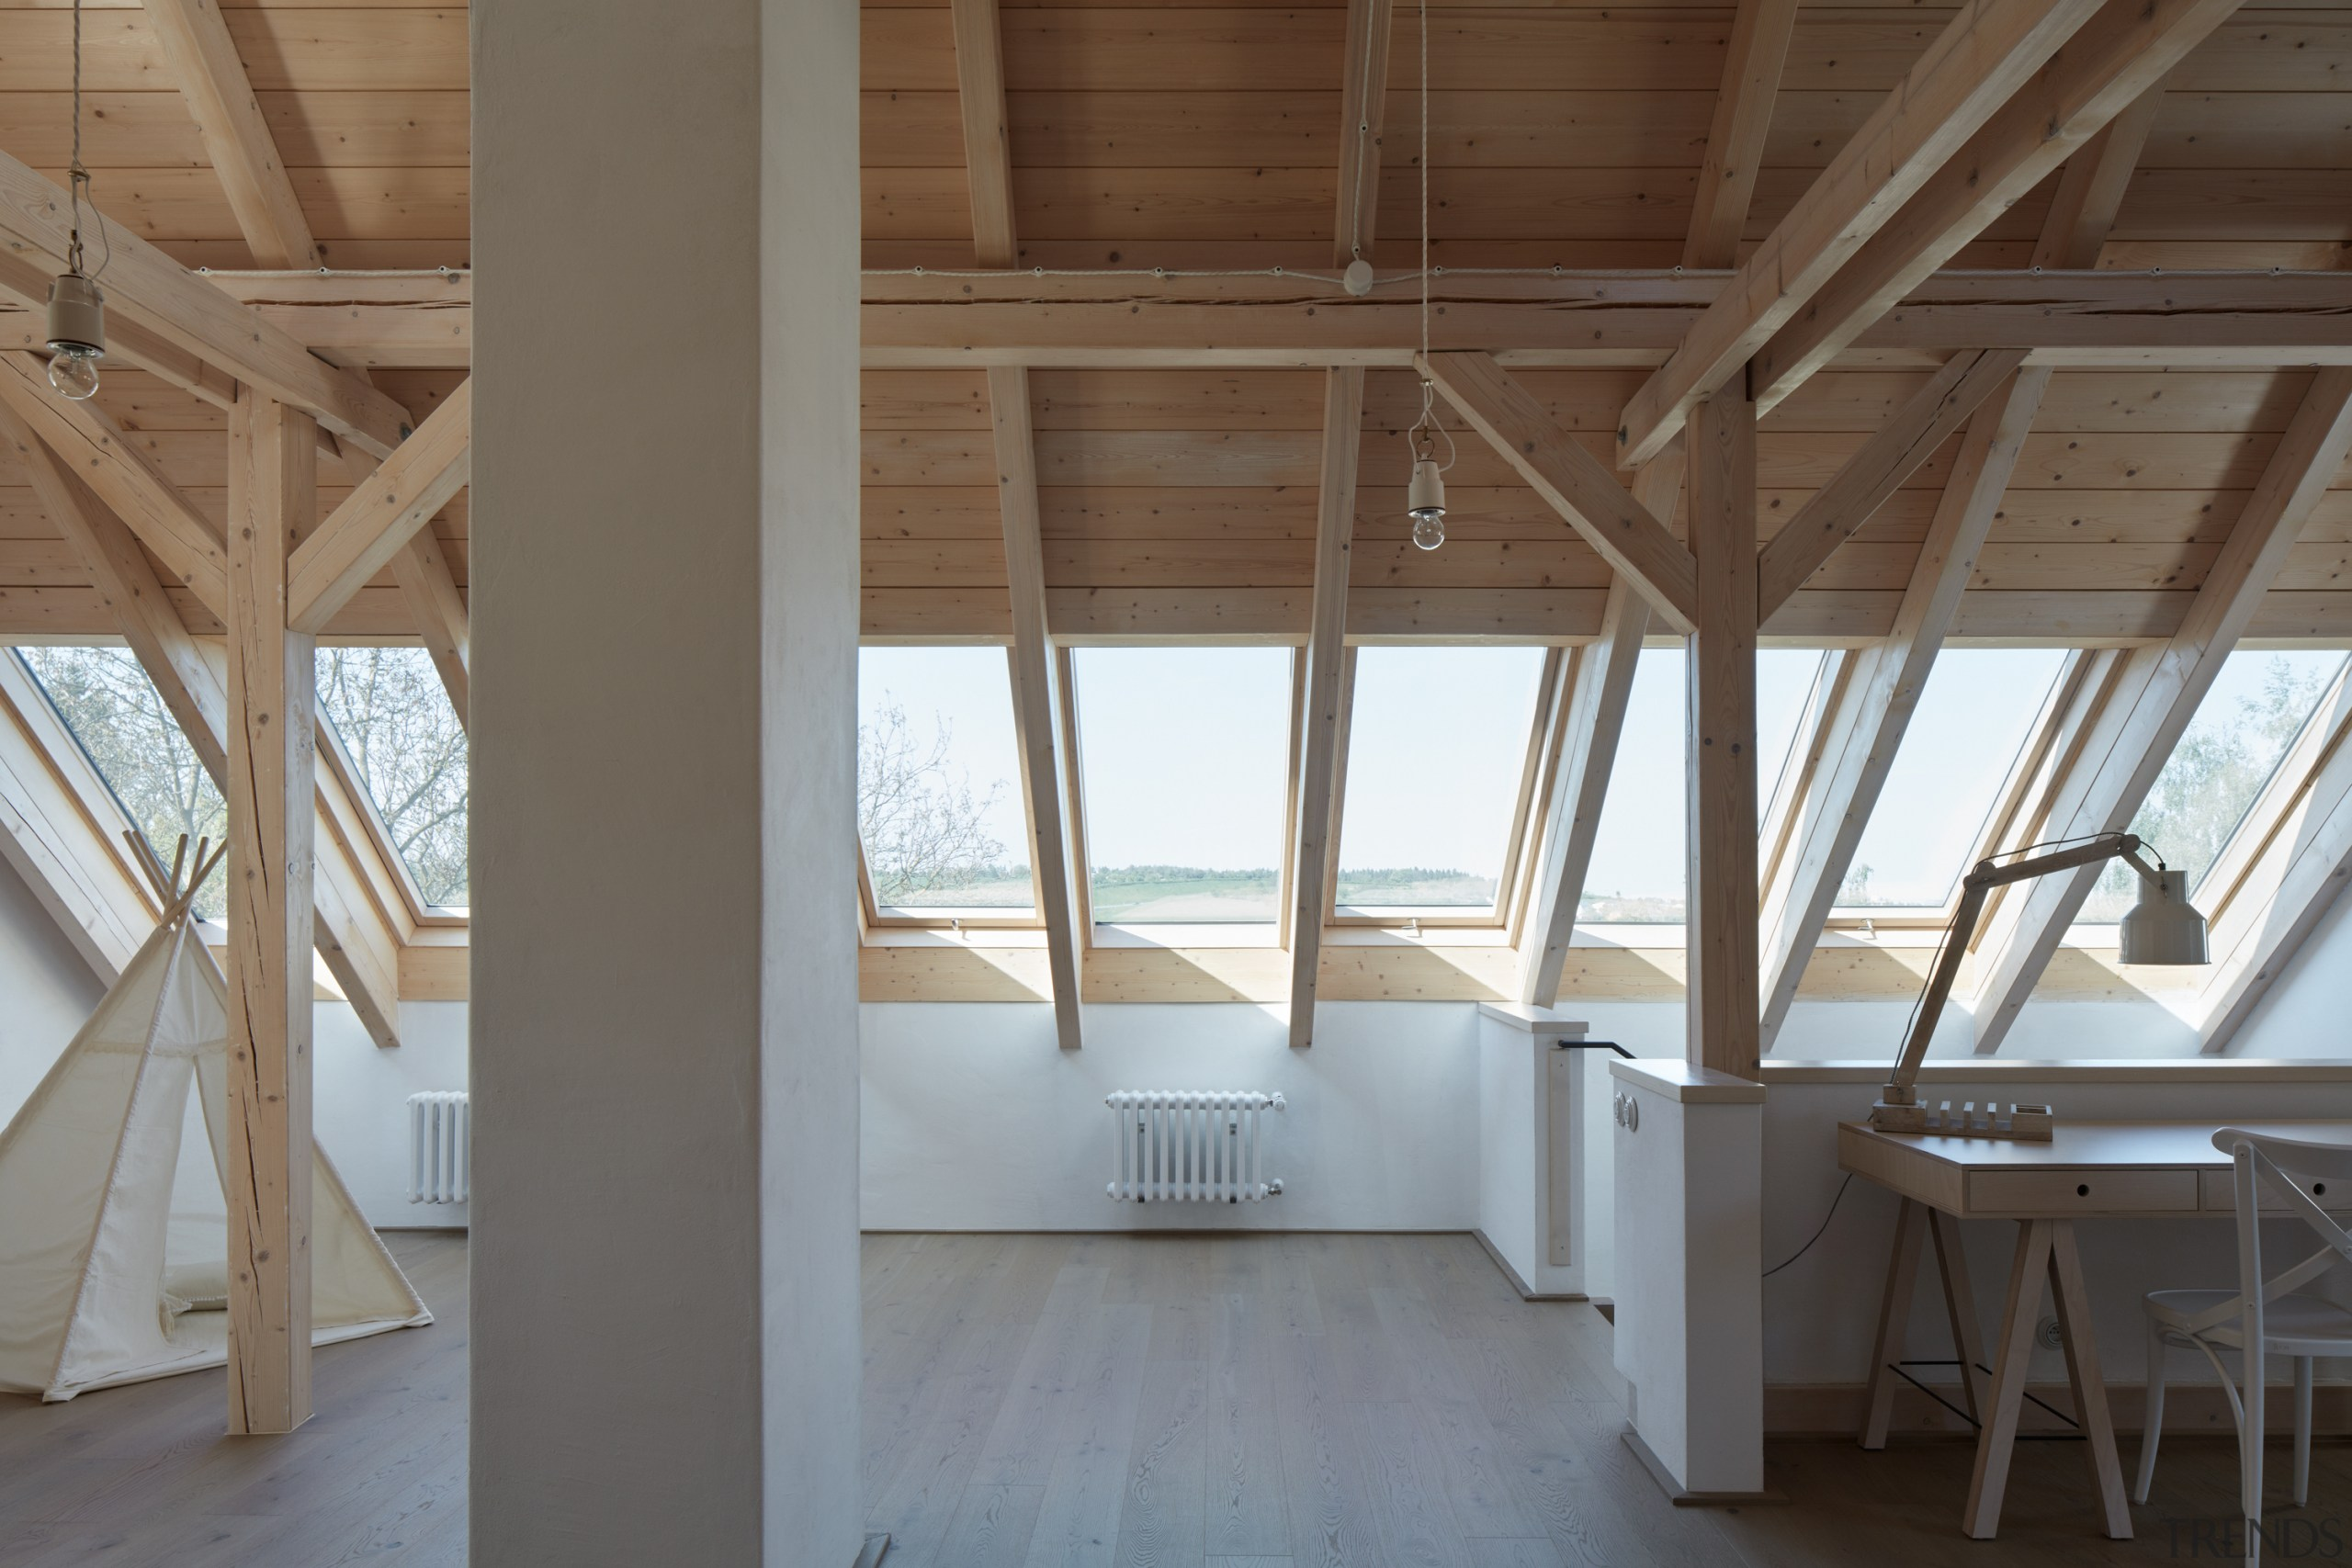 The home's attic space is complete with great